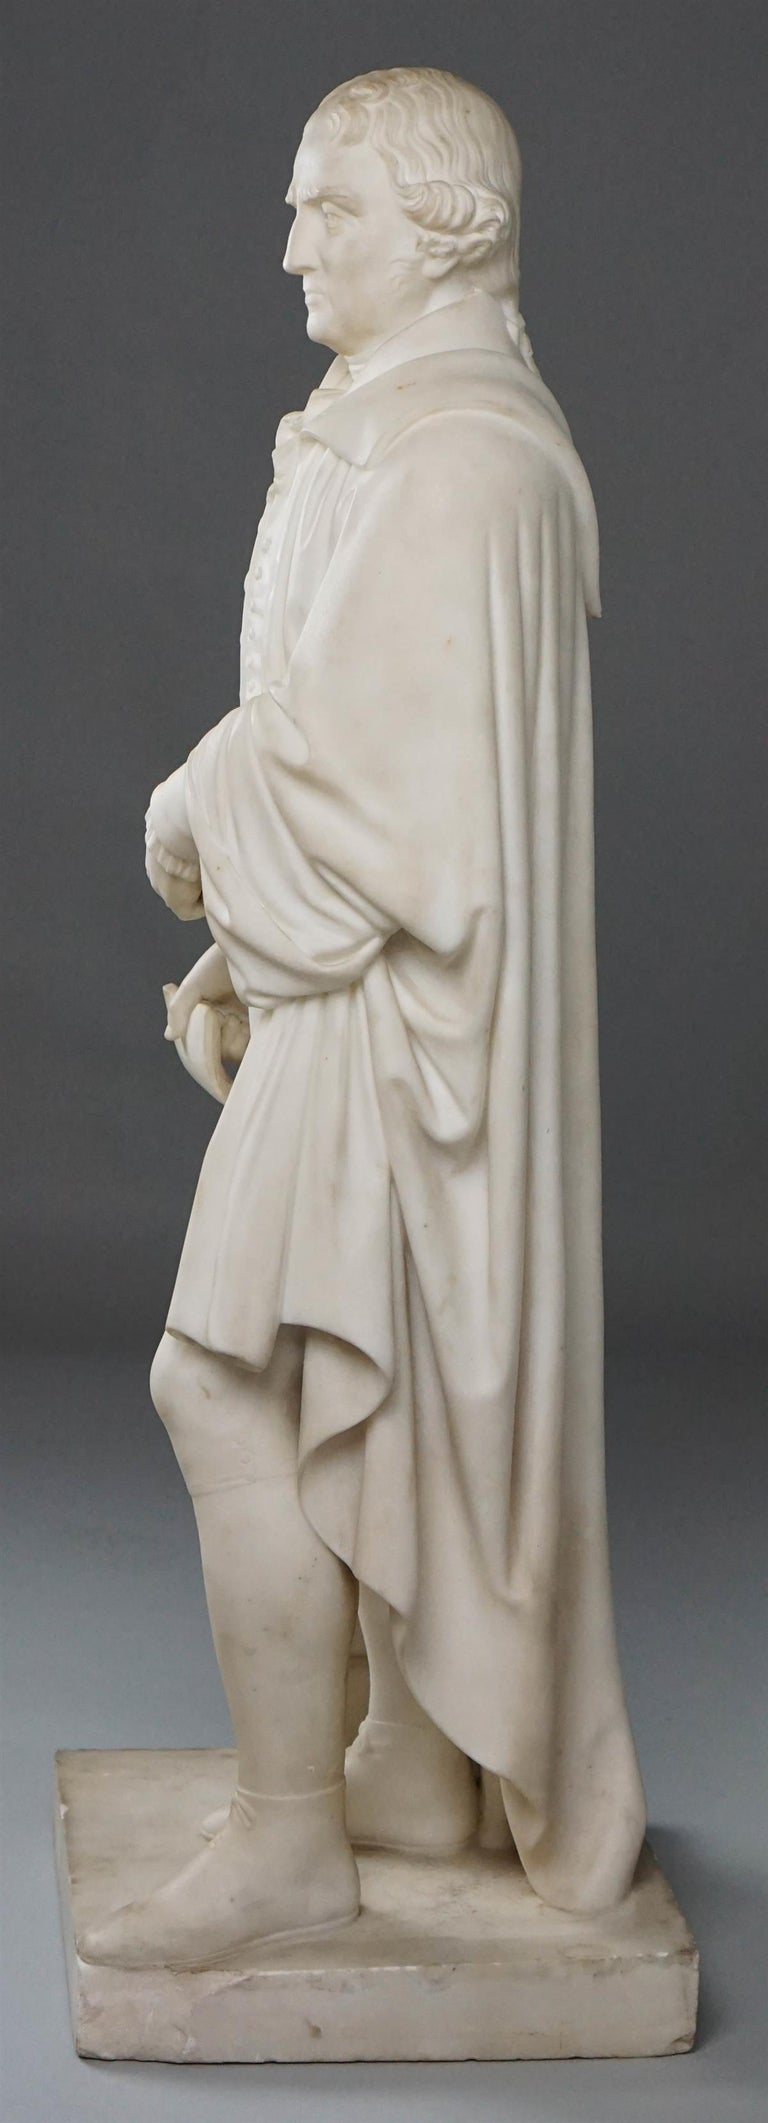 Mid-19th Century Thomas Jefferson White Marble Figure Holding the Declaration of Independence For Sale